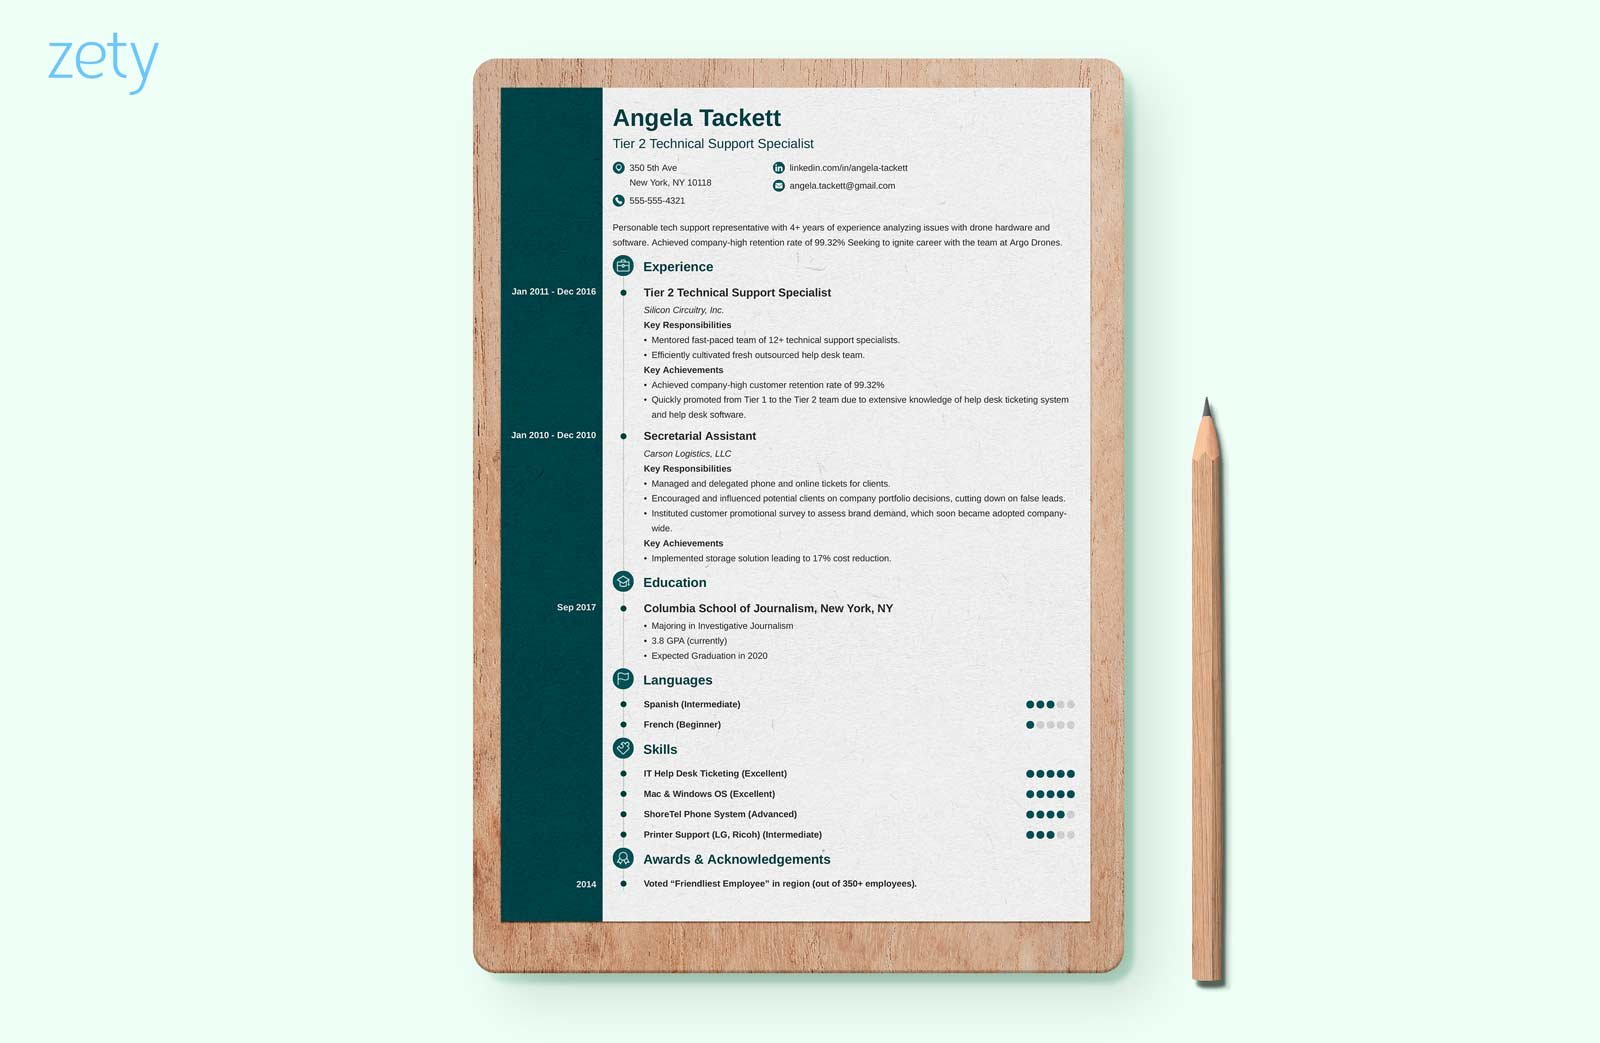 Uptowork Resume Creative Resume Templates 16 43 Examples To Download And Guide